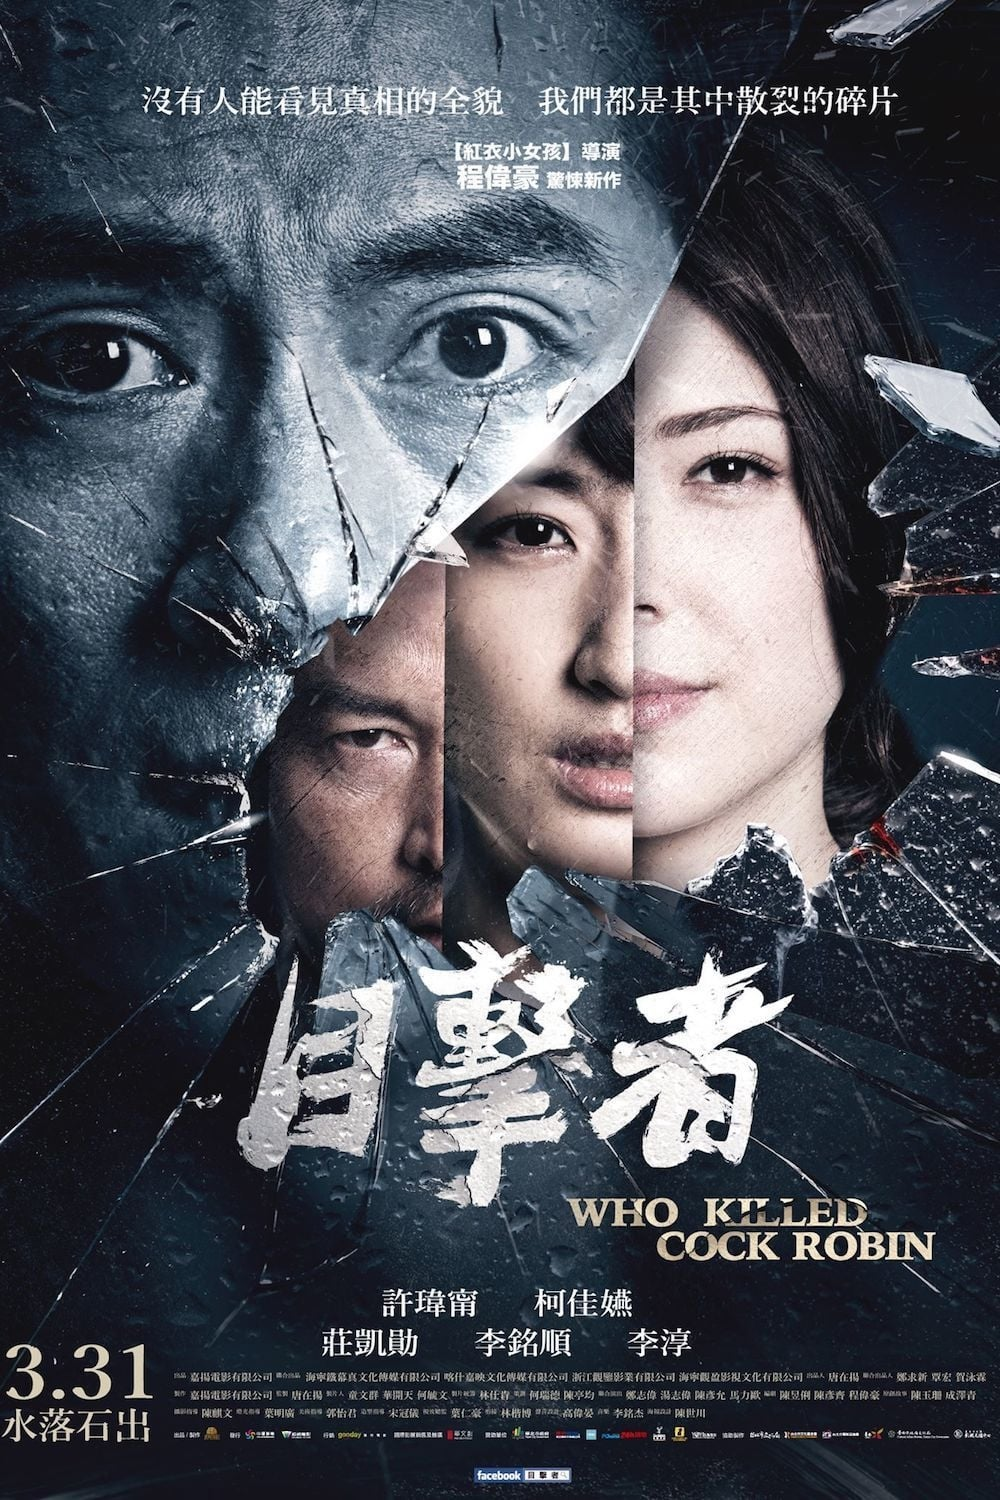 watch Who Killed Cock Robin 2017 online free